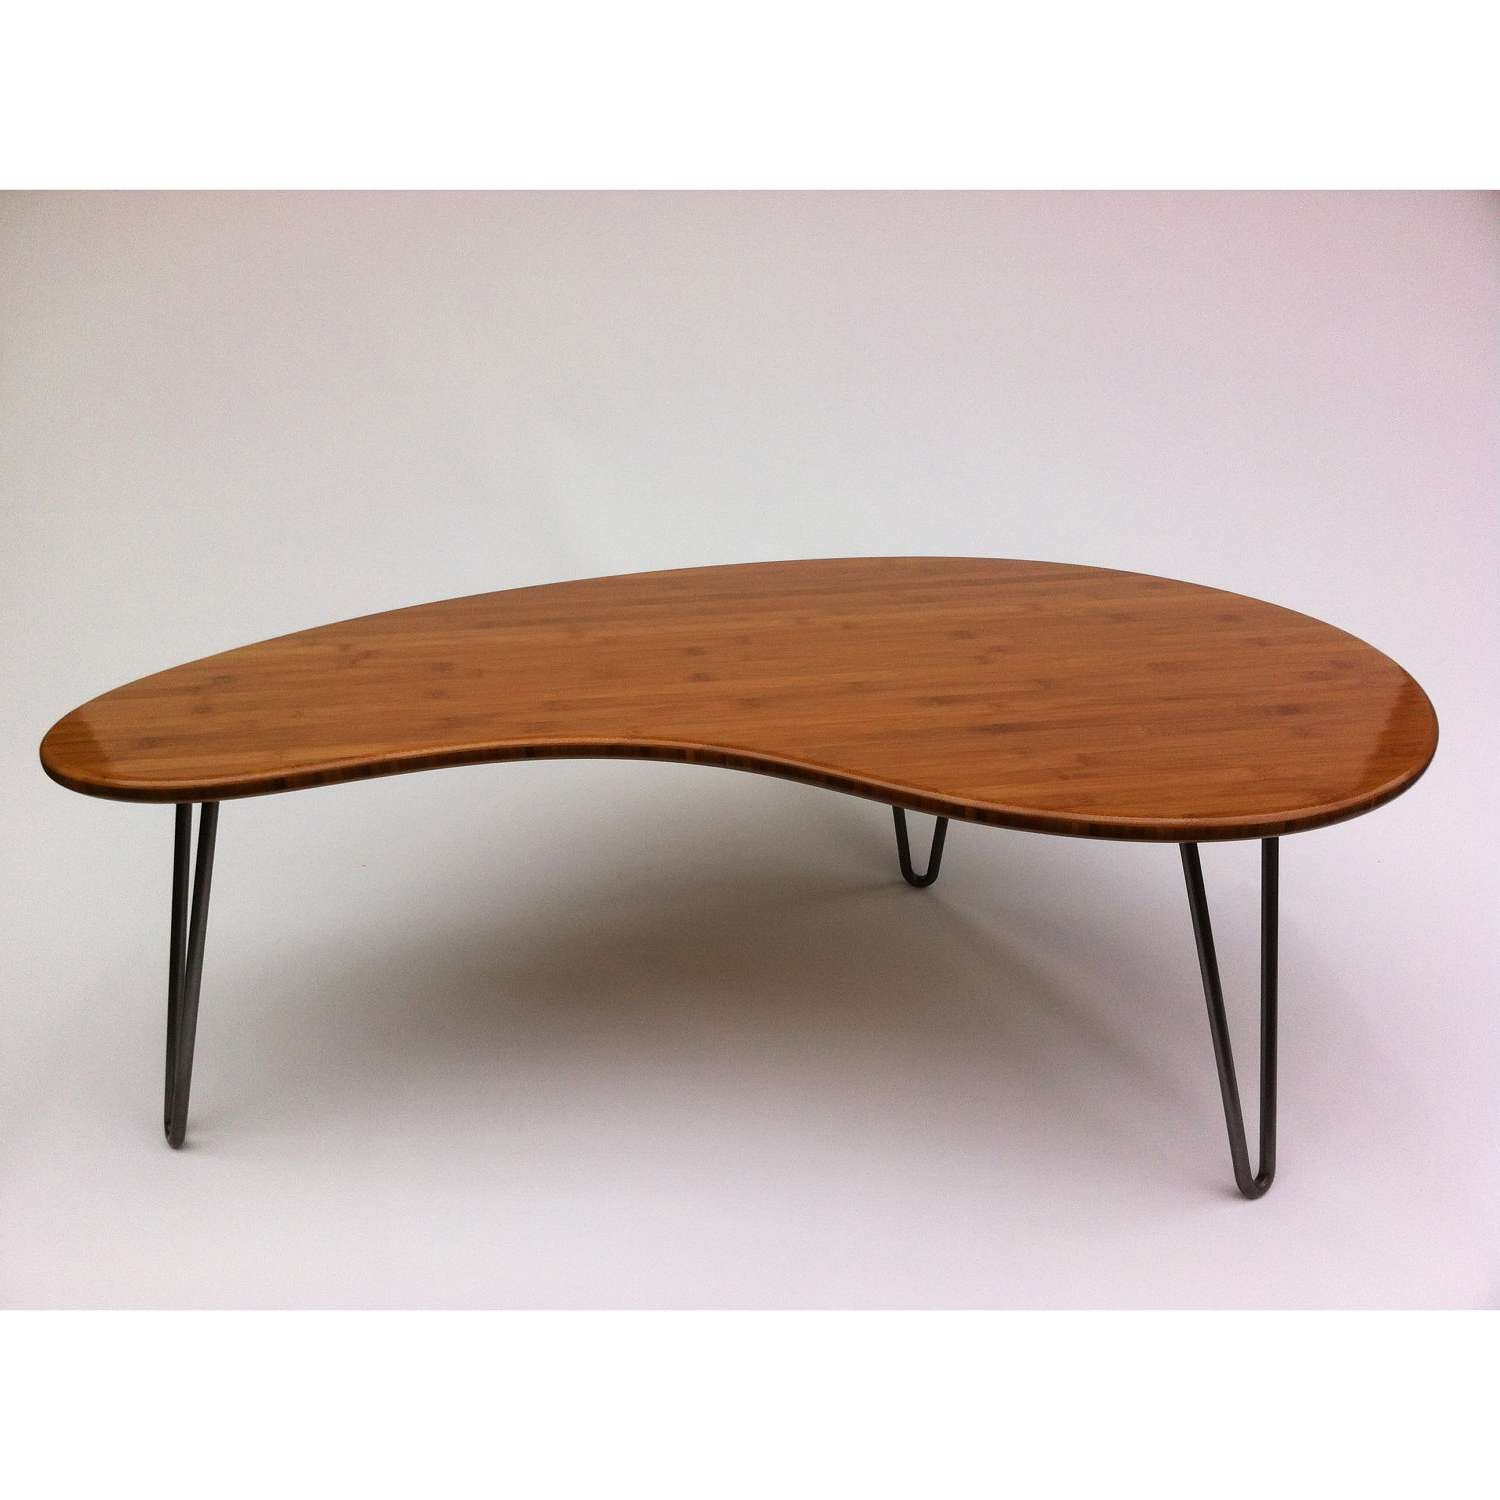 Widely Used Oval Black Glass Coffee Tables With Coffee Table : Marvelous Triangle Table Oval Coffee Table Triangle (View 15 of 20)